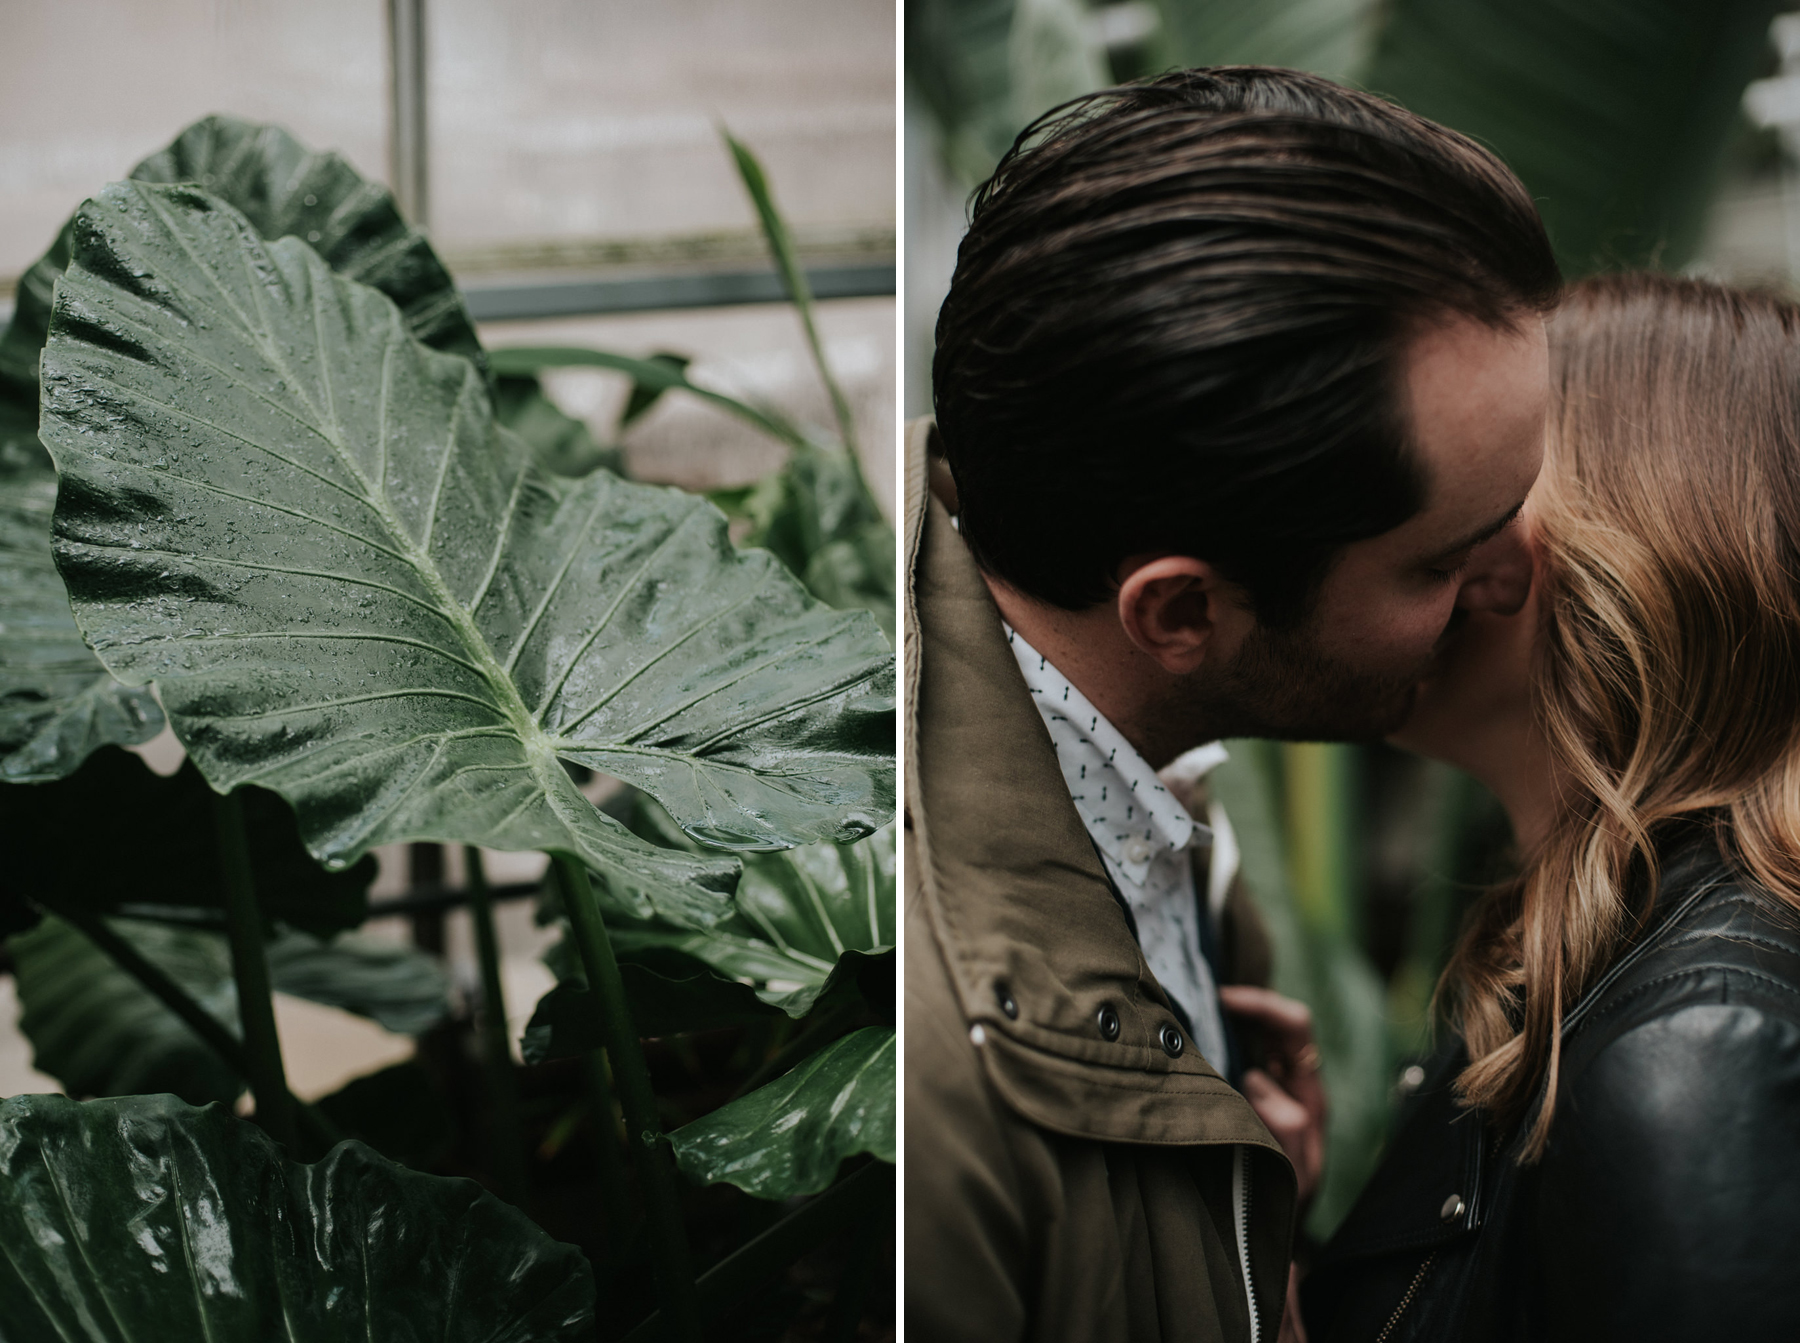 Daring Wanderer // Botanical greenhouse engagement at Cloud Gardens